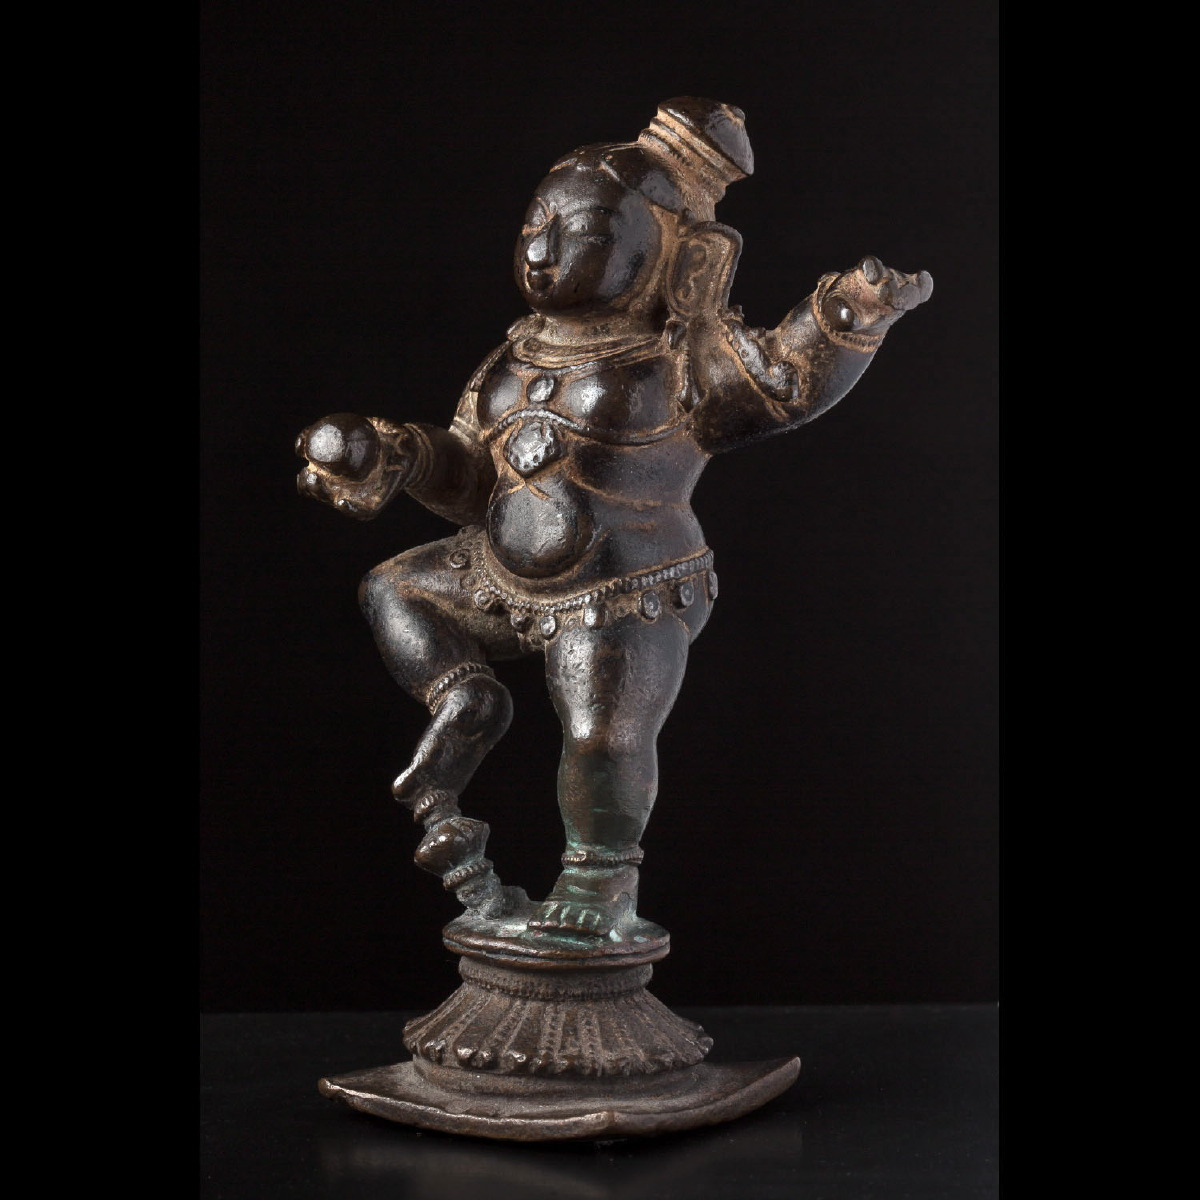 Photo of krishna-infant-butter-thieth-southern-india-16-17-th-centad